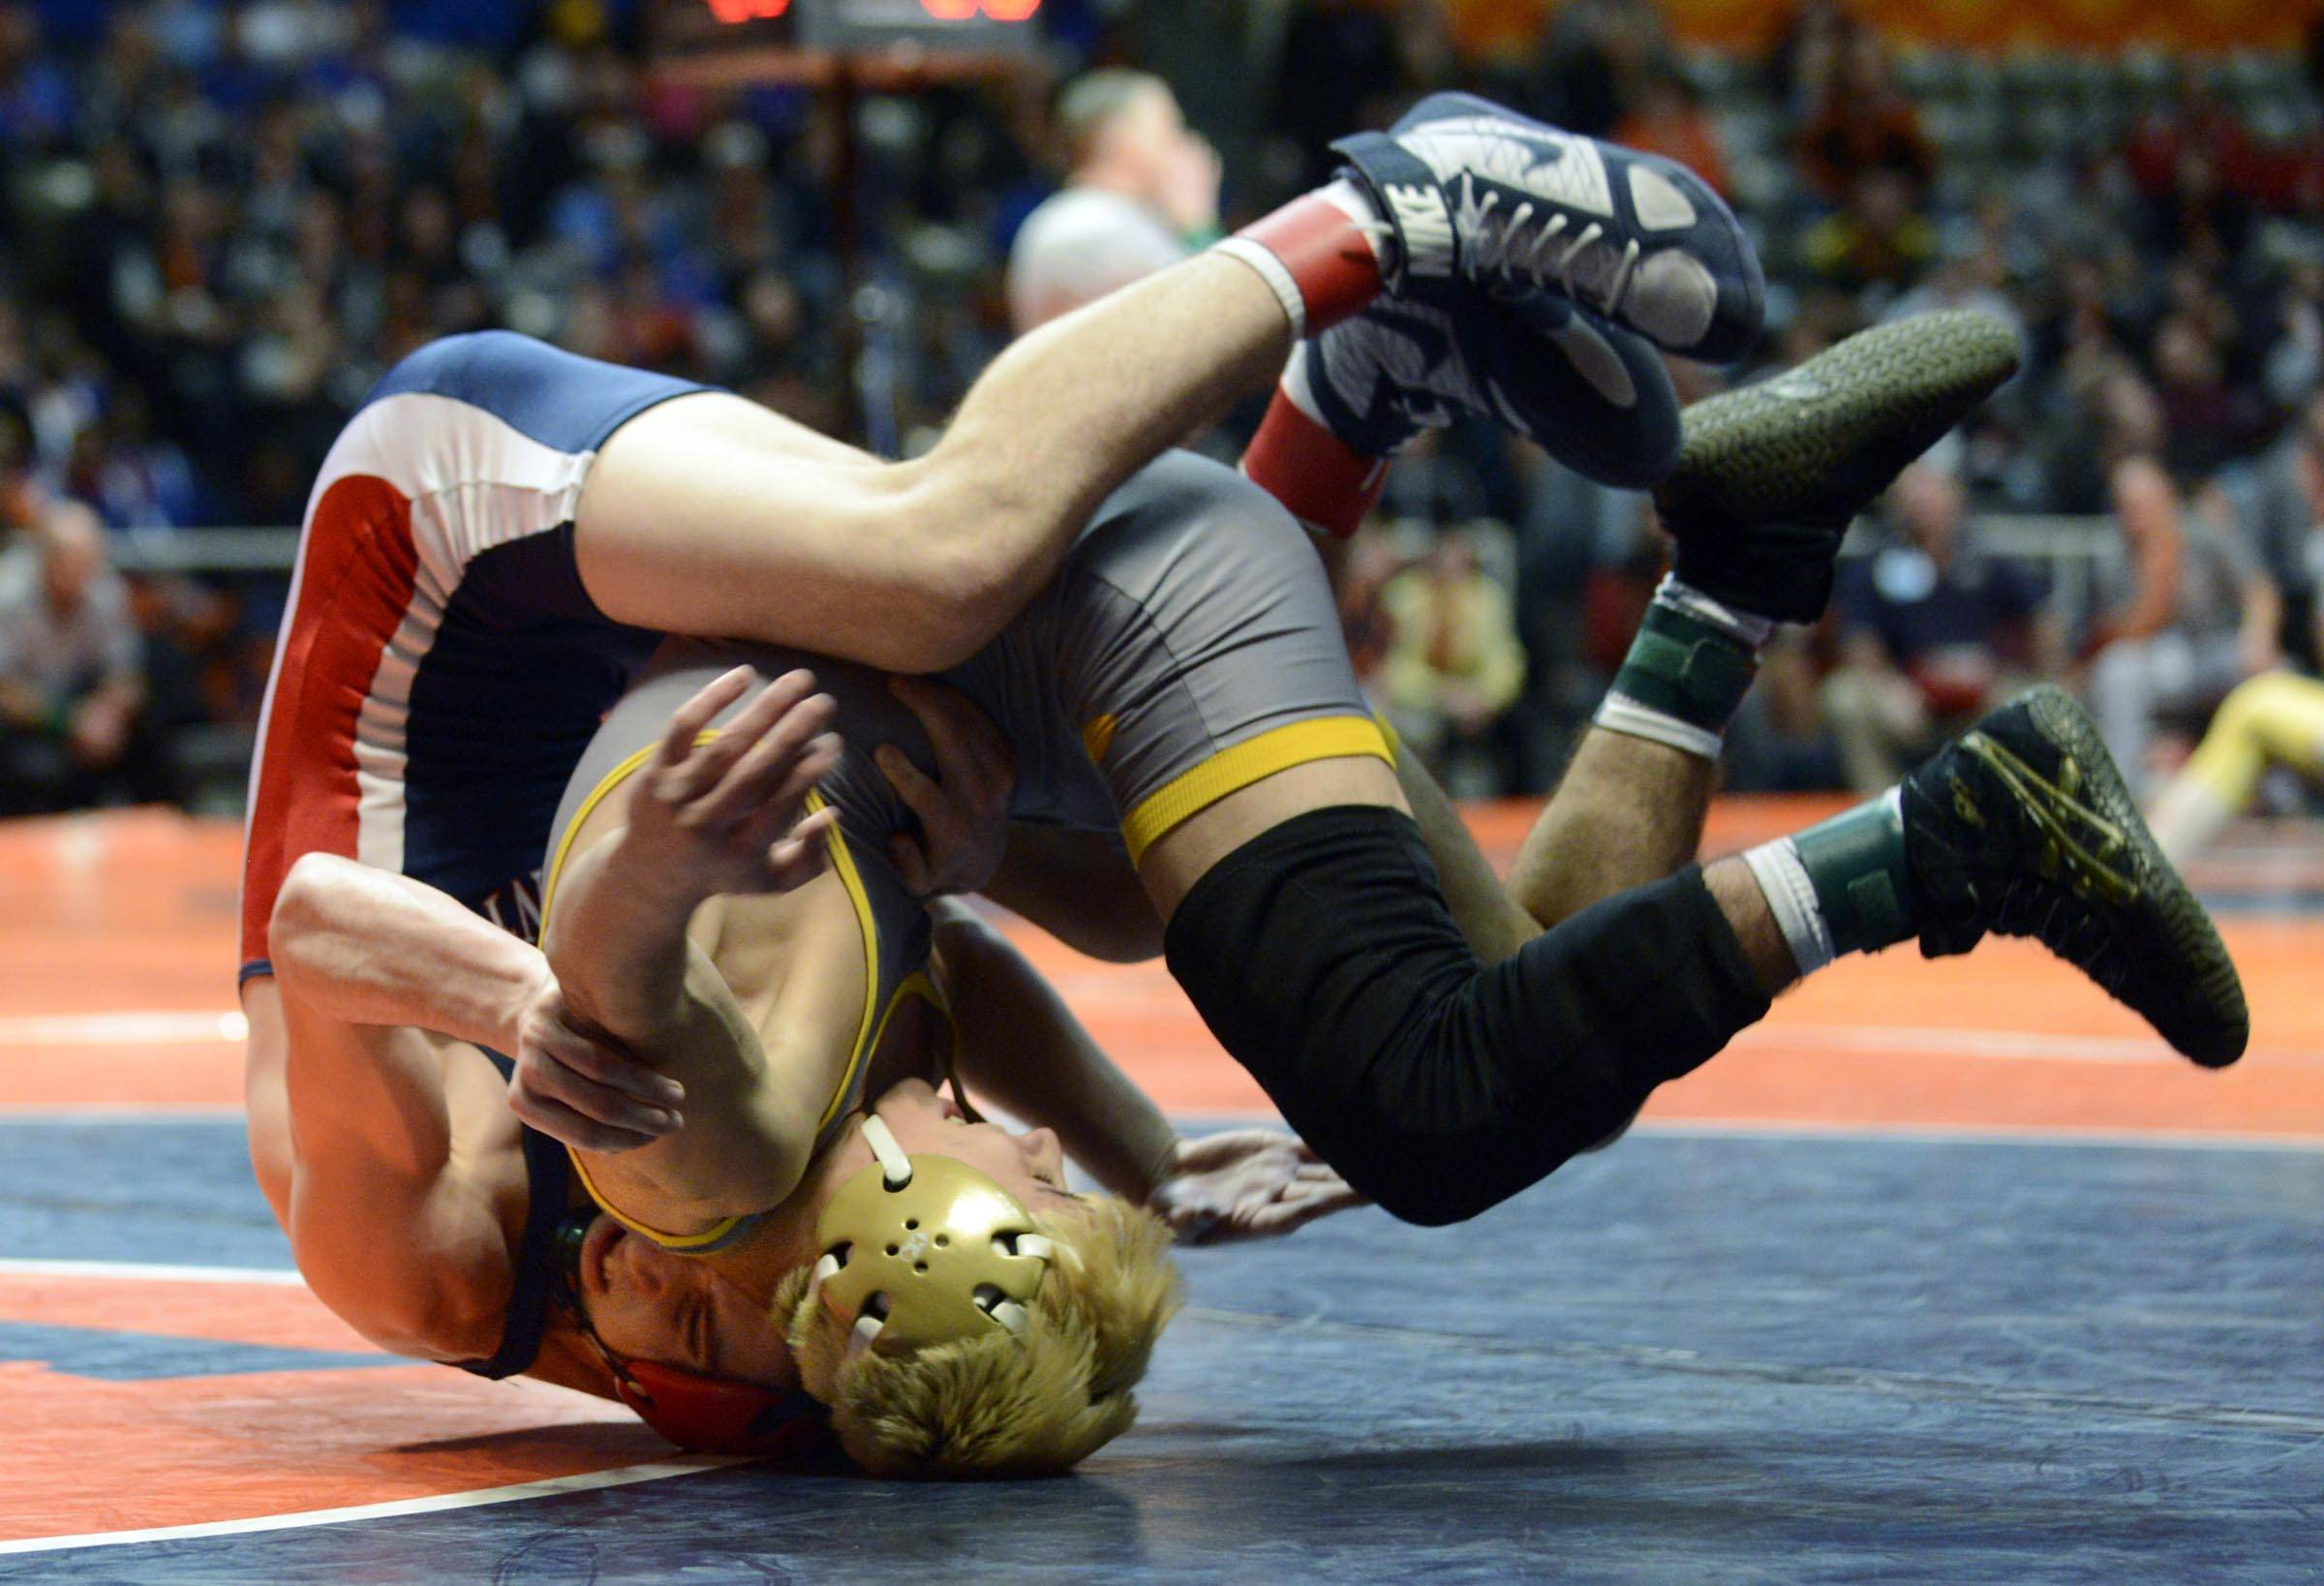 Bobby Alexander of Conant competes against Jered Cortez of Glenbard North at 132 pounds.